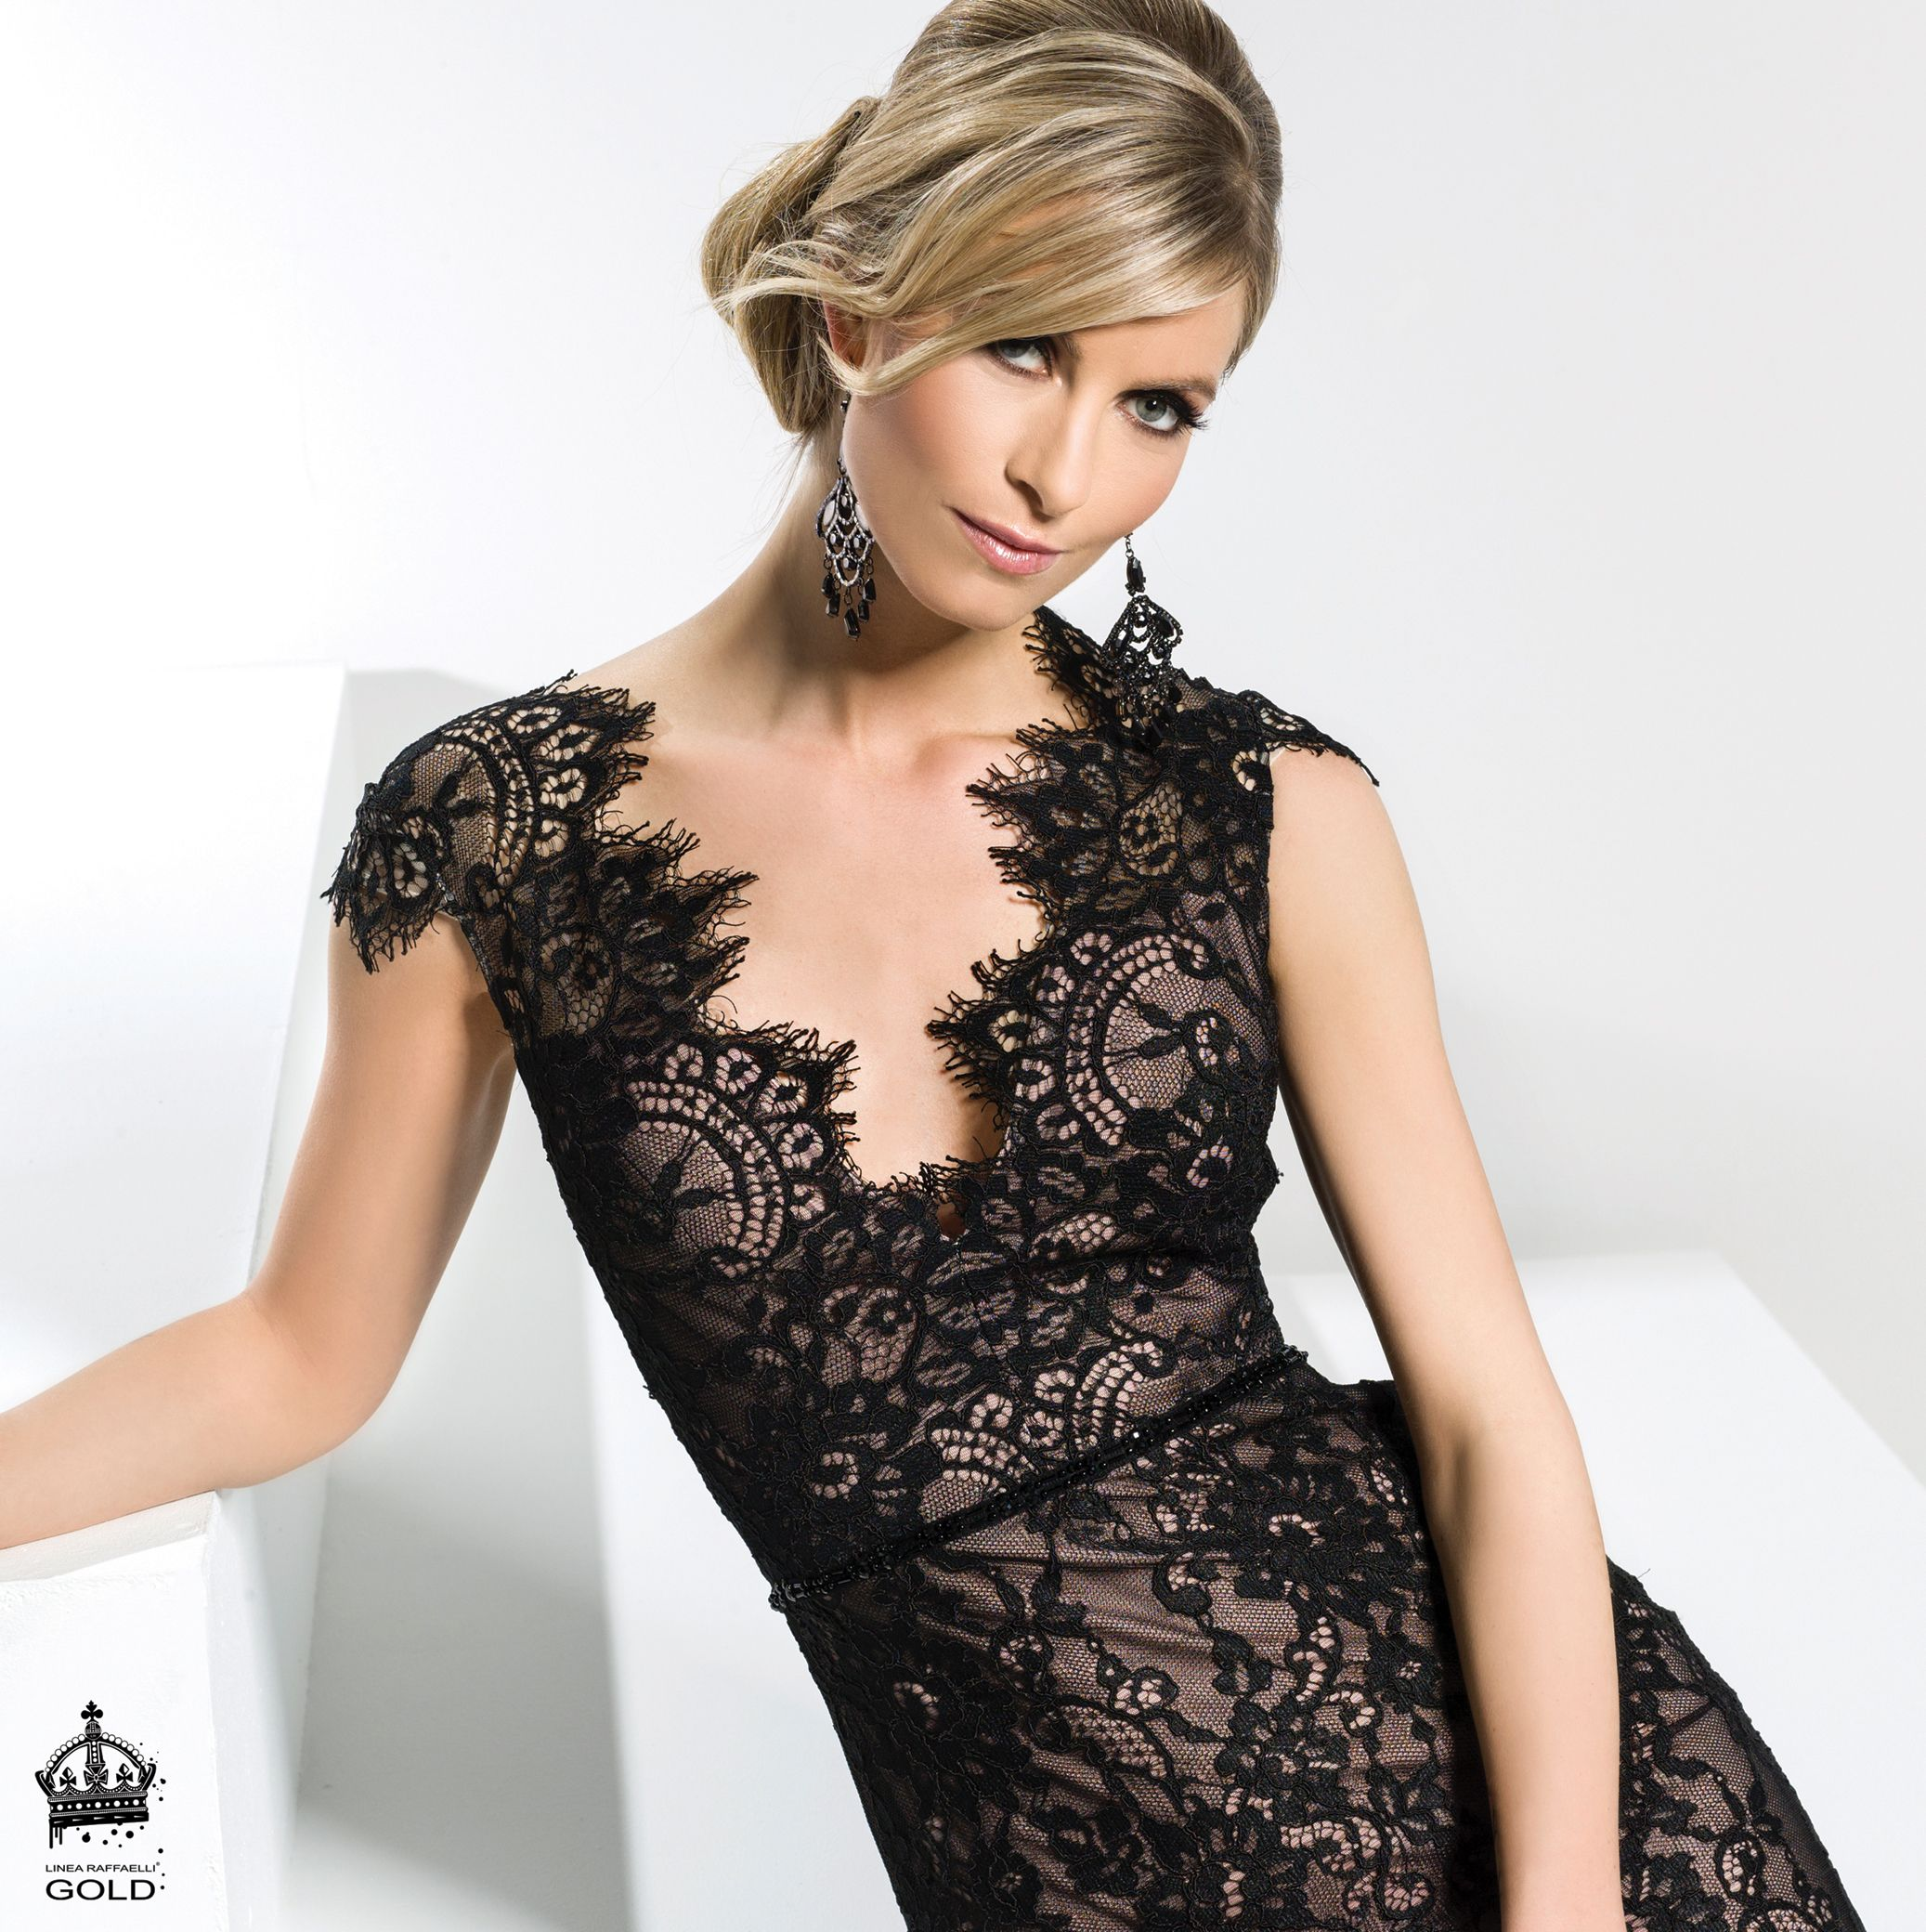 Linea raffaelli resort set long black lace evening